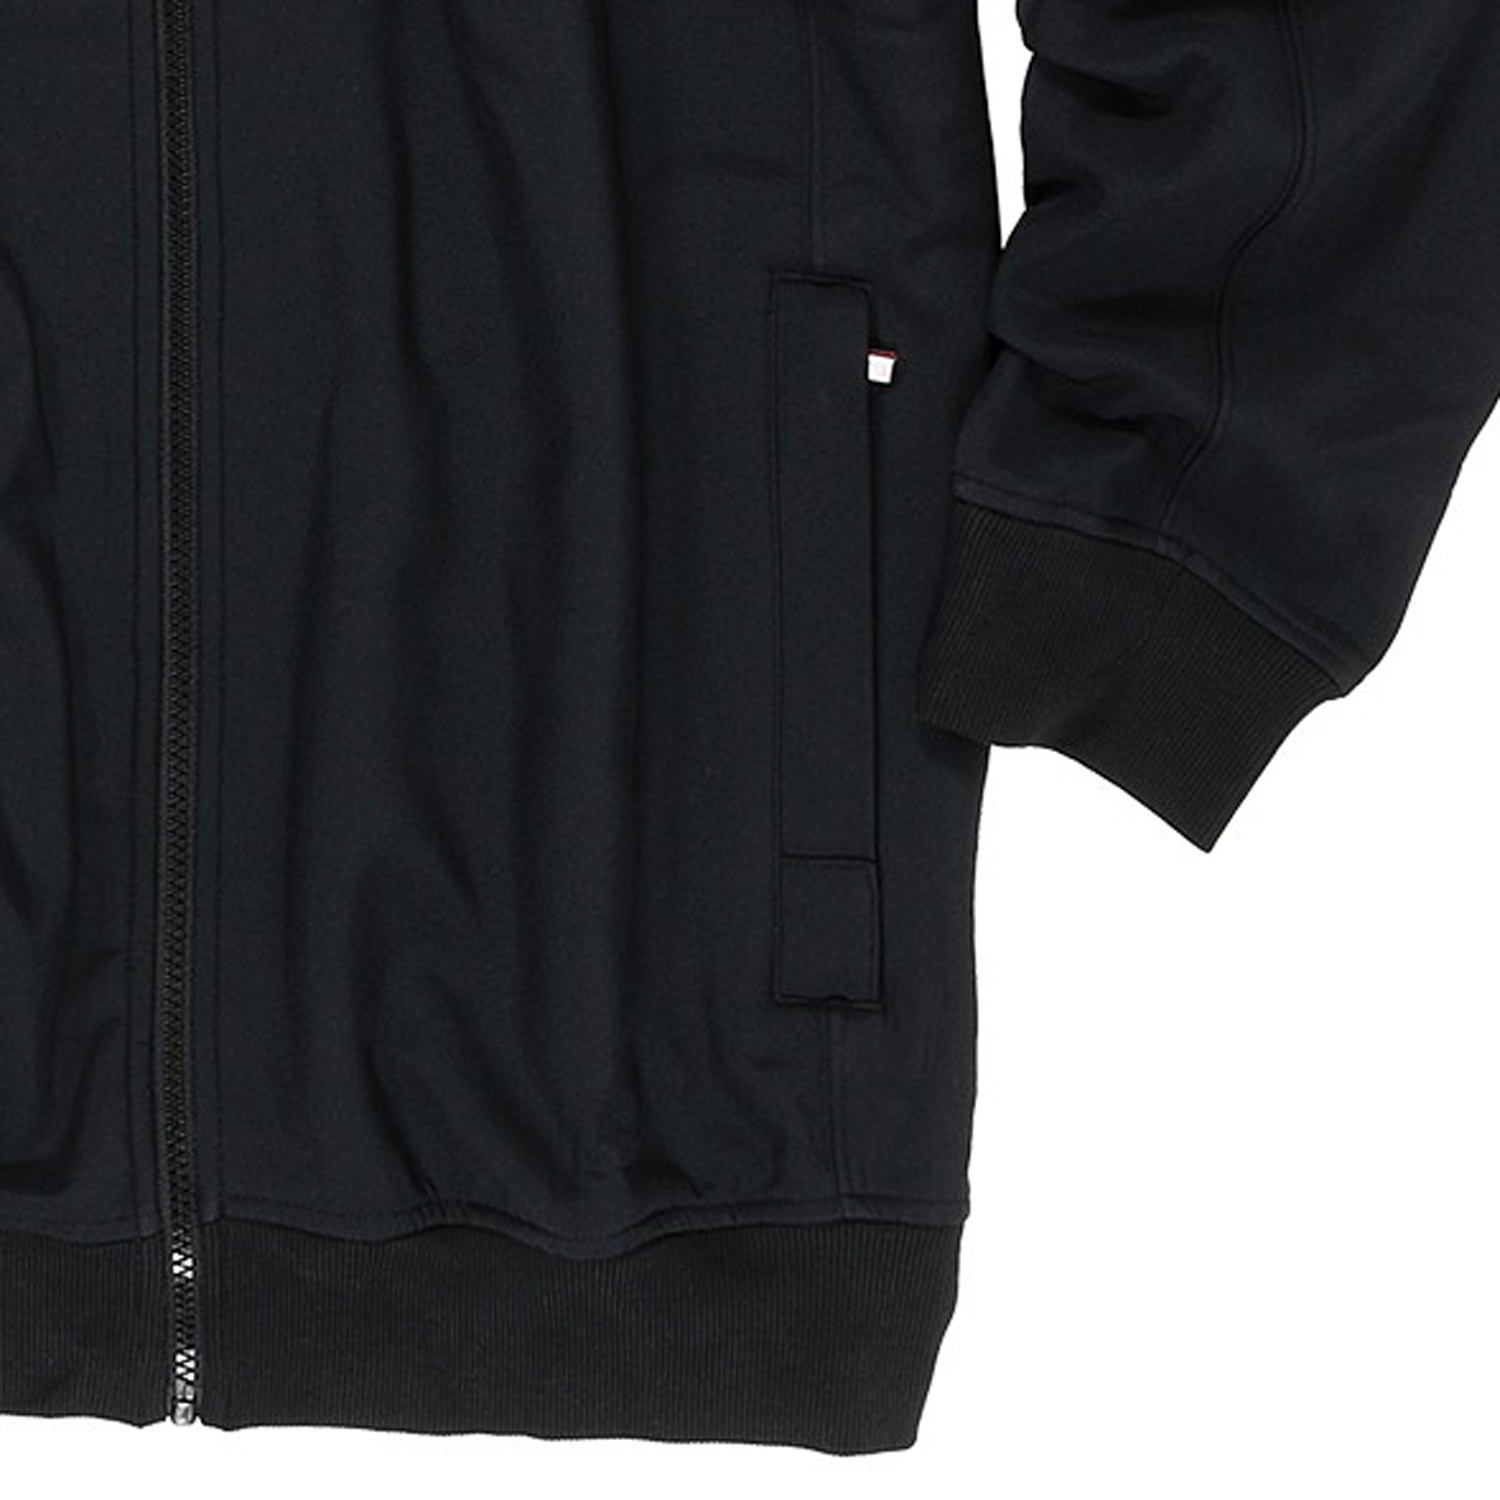 Detail Image to Sweat jacket in black by Redfield up to oversize 6XL